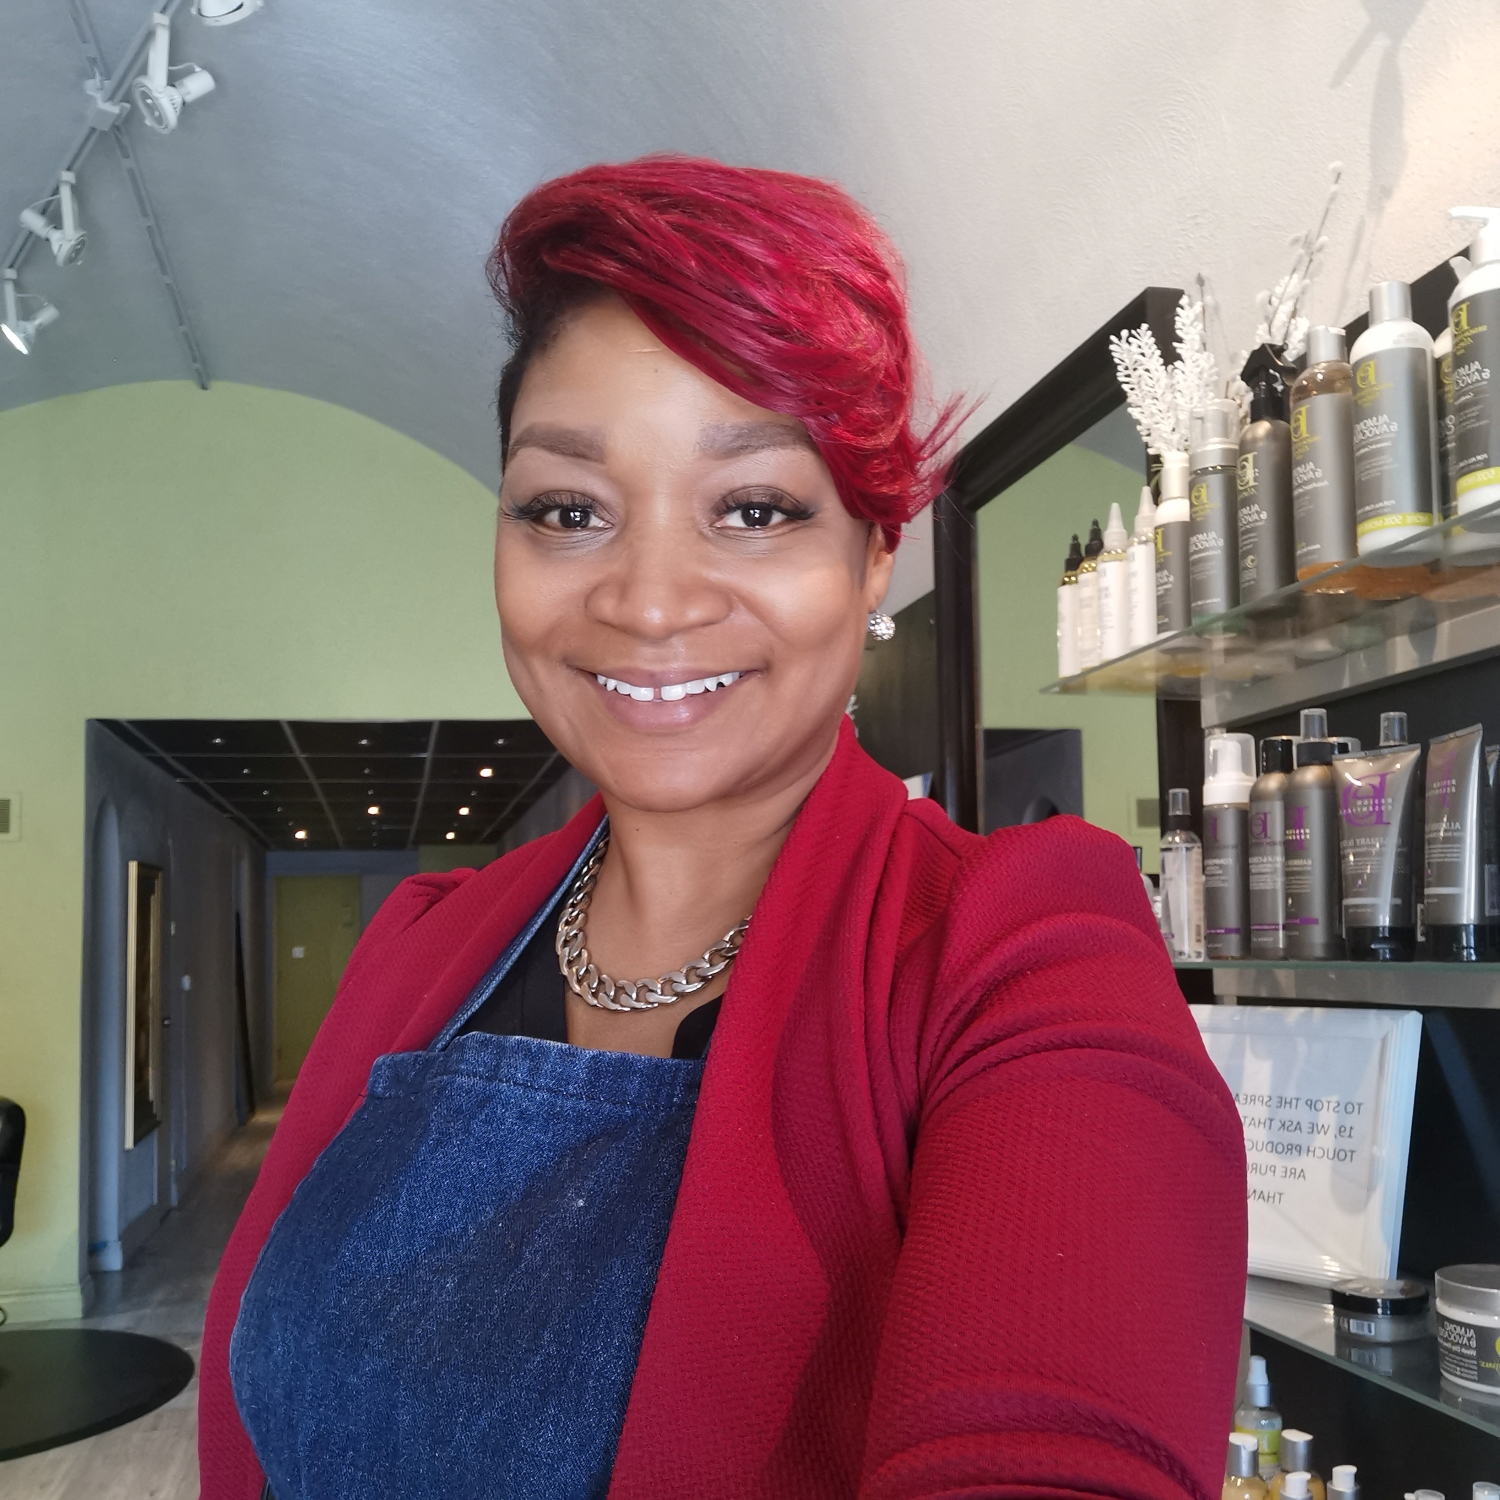 Image of Camille owner of Amorphous Hair Salon - International Women's Day